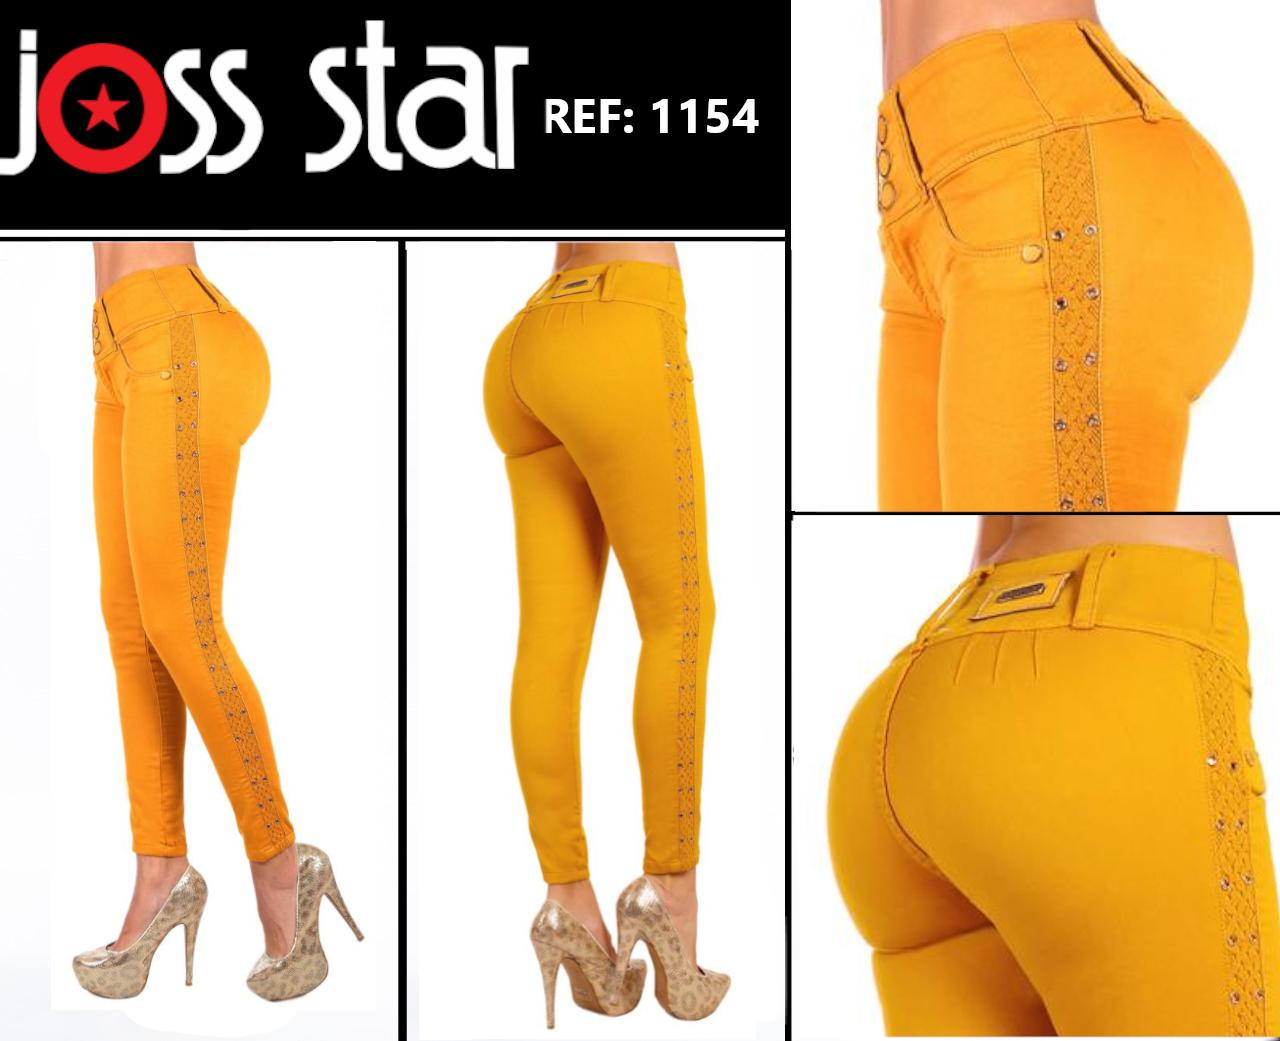 Jean De moda Boutique Colombiano Levantacola Color Mostaza marca Joss Star